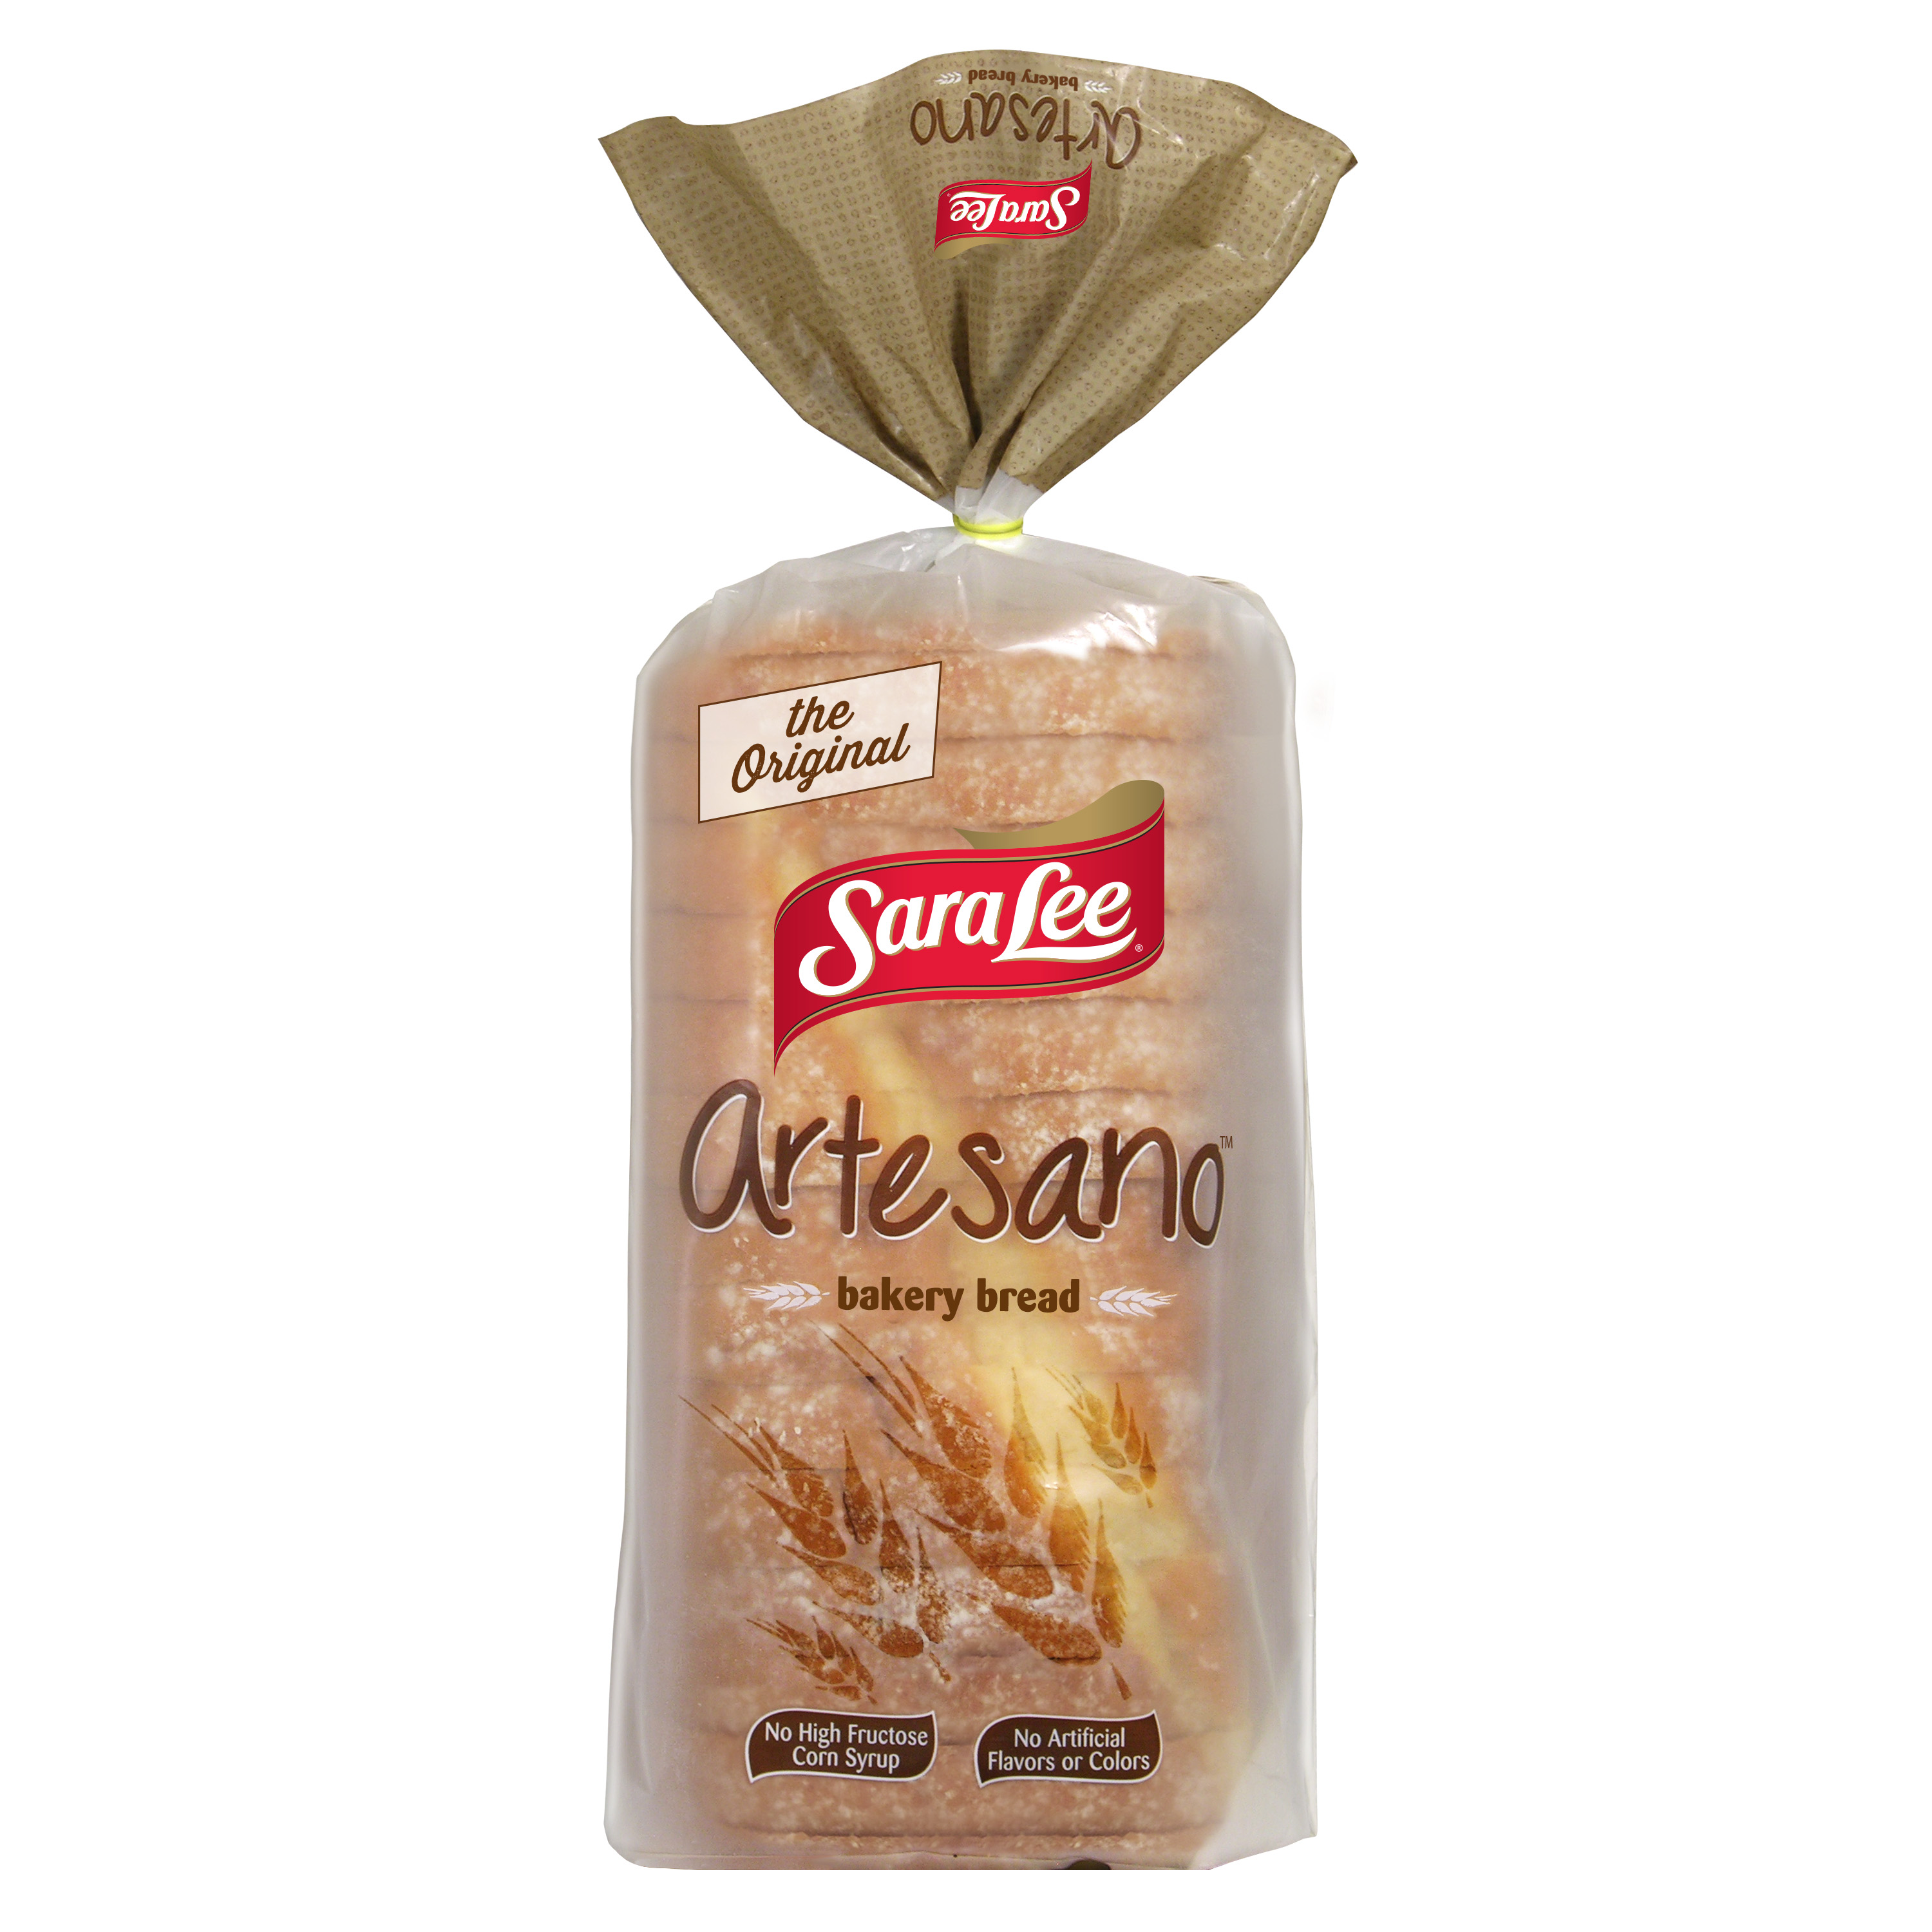 Sara Lee Artesano Bakery Bread 20 oz